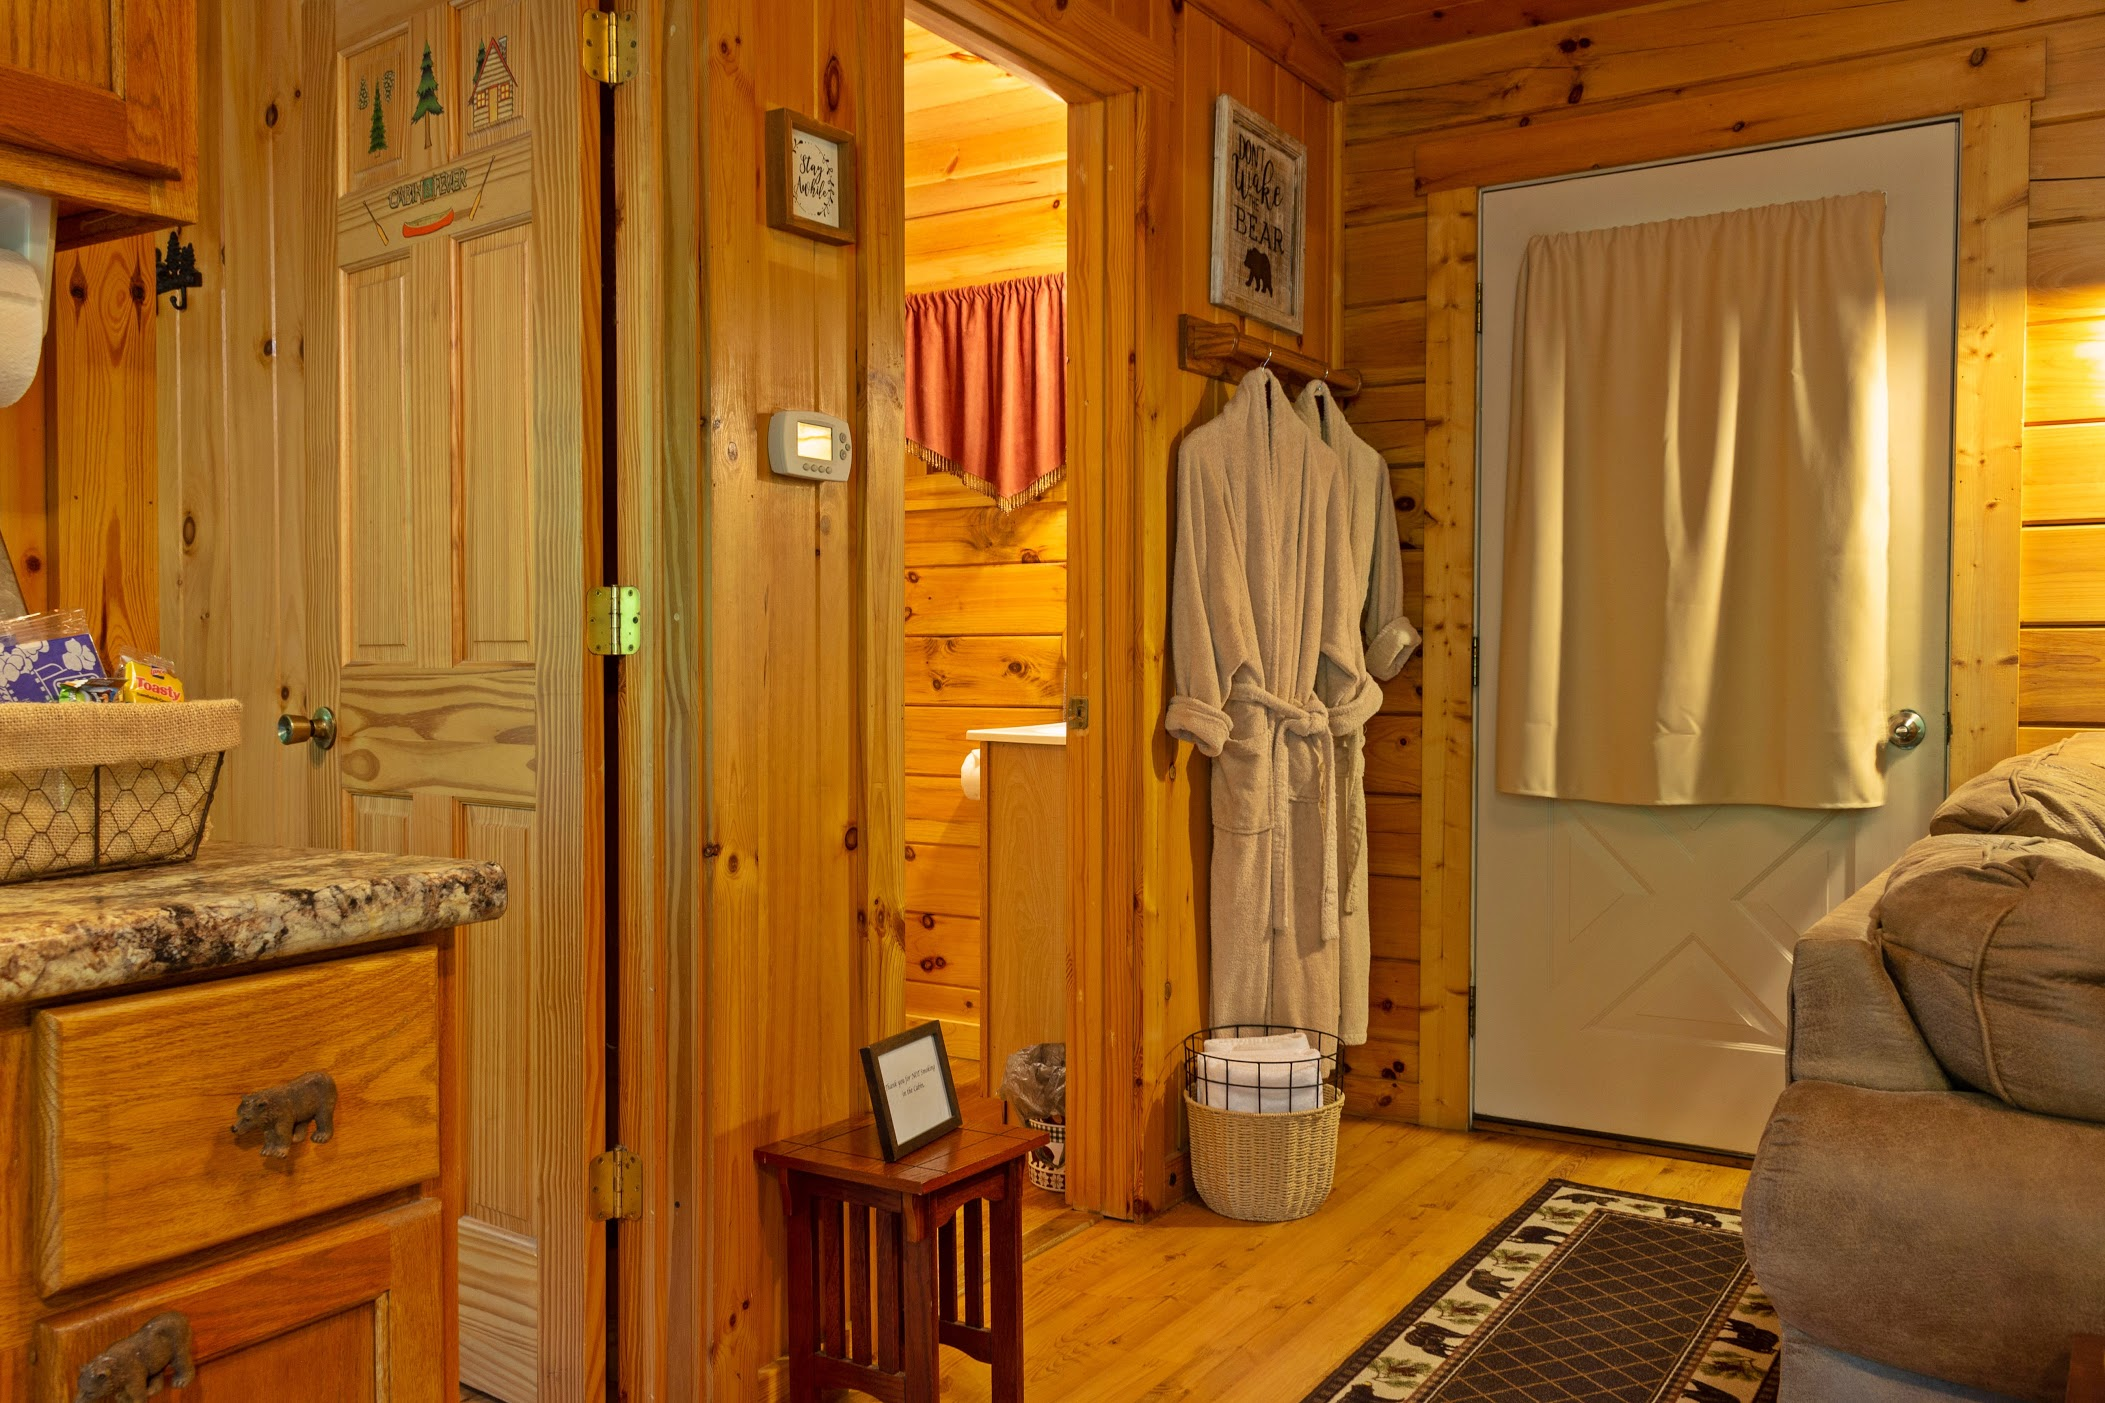 Photo 1407_8960.jpg - This view from the kitchen first shows the bedroom door, then the bathroom door and next to the back door are towels and robes for your use to the hottub.